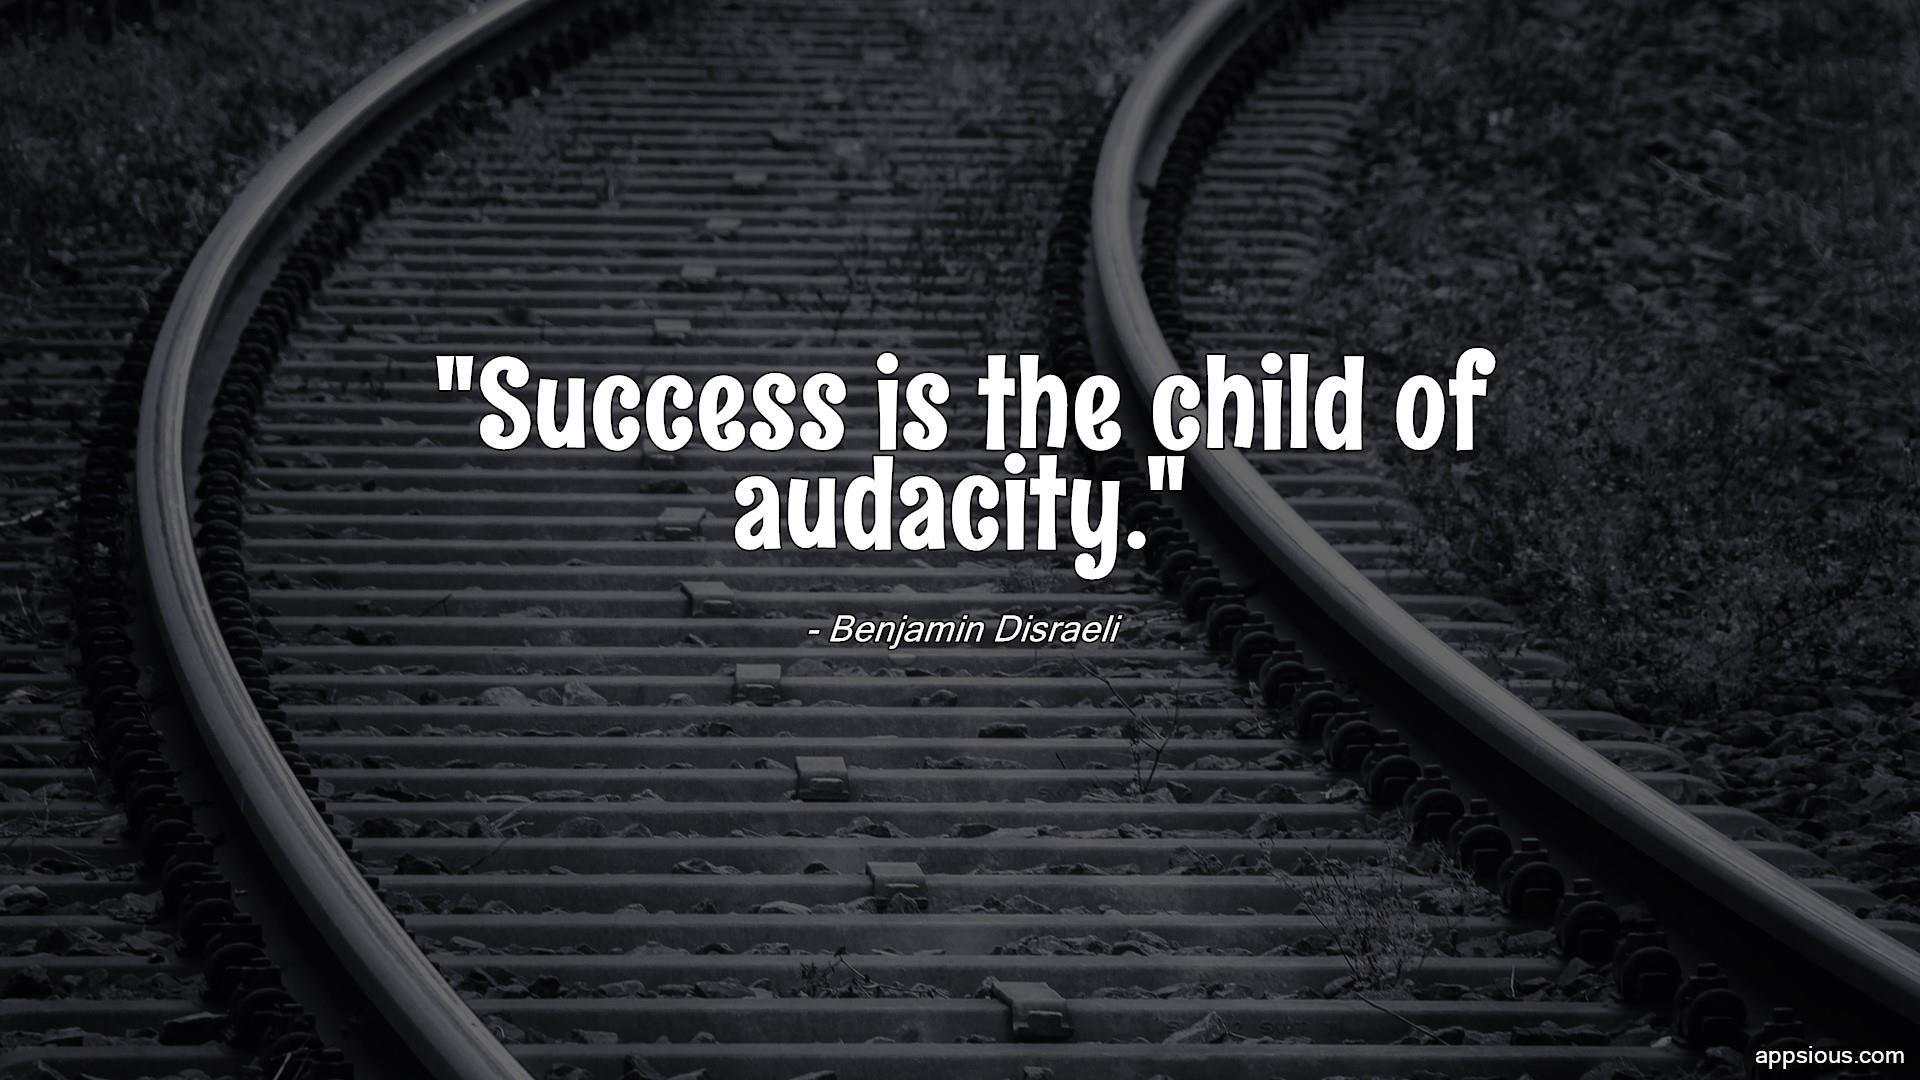 Success is the child of audacity.